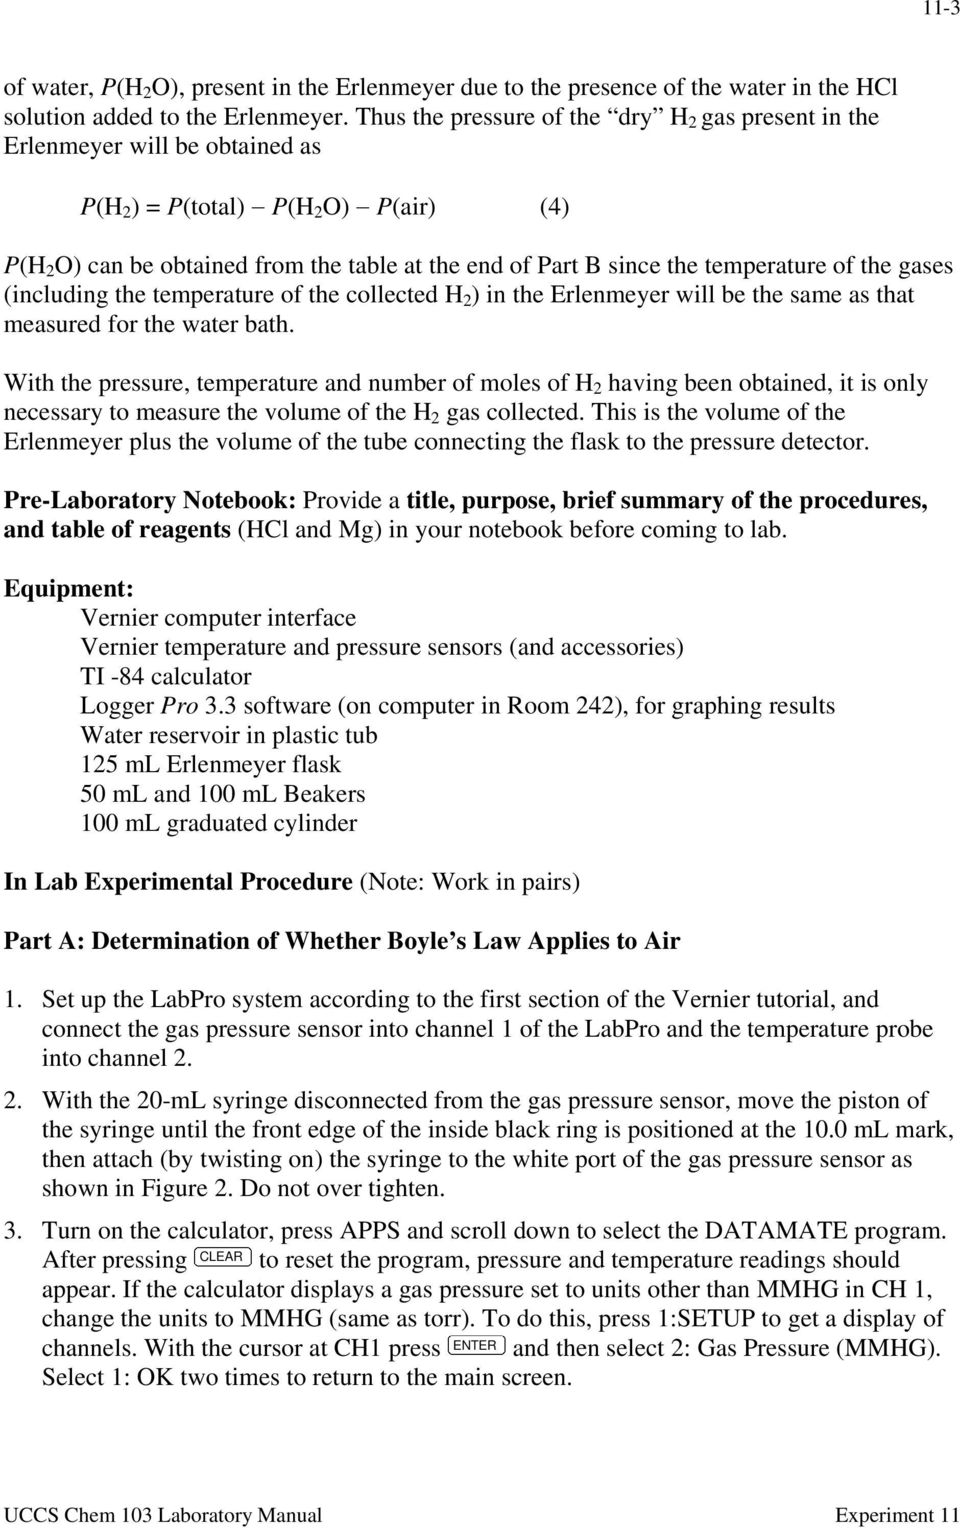 Experiment 11 The Gas Laws - PDF